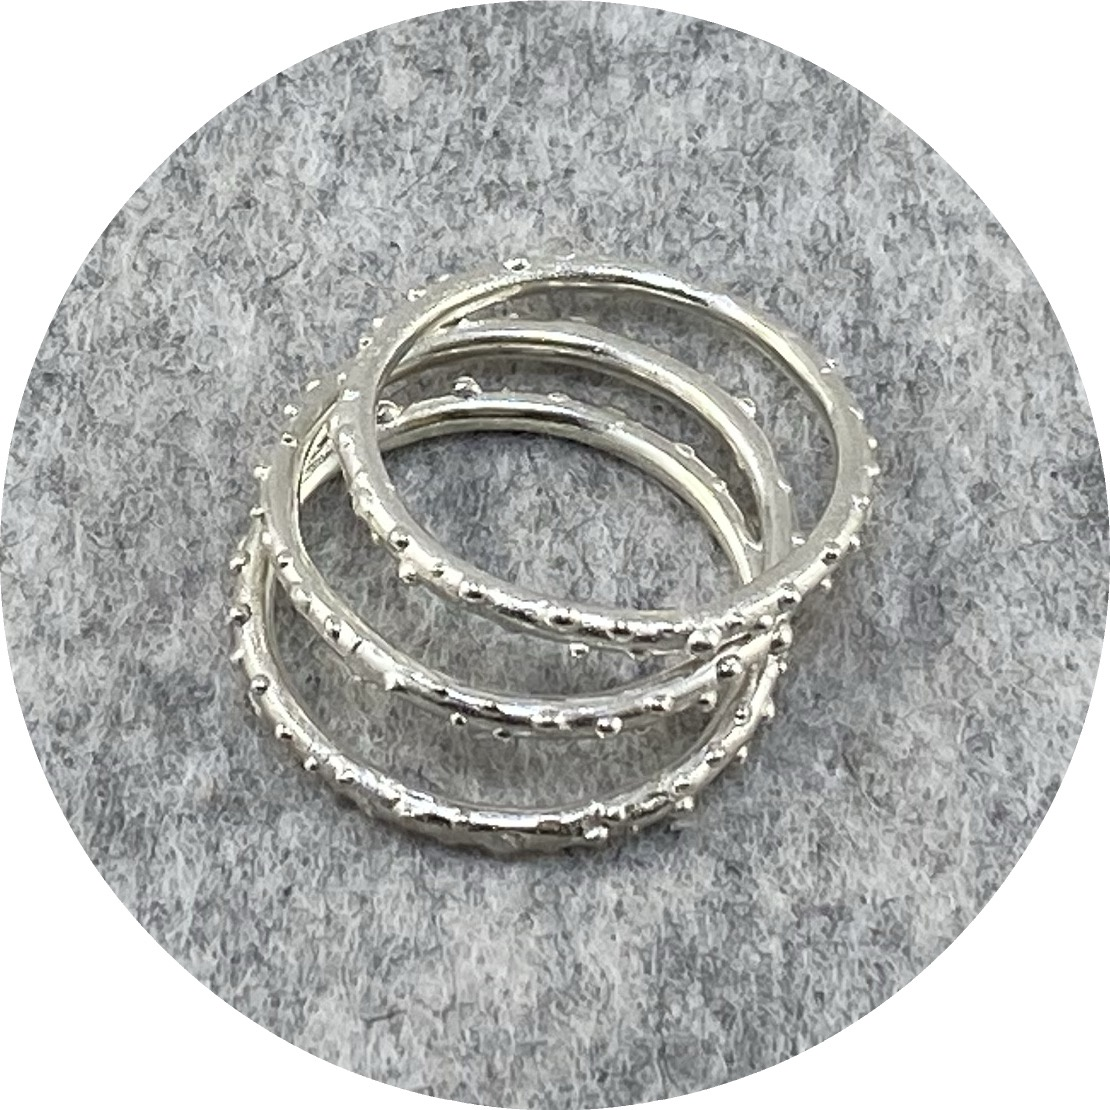 Katie Shanahan - Stacking Speckeld Sterling Silver Rings